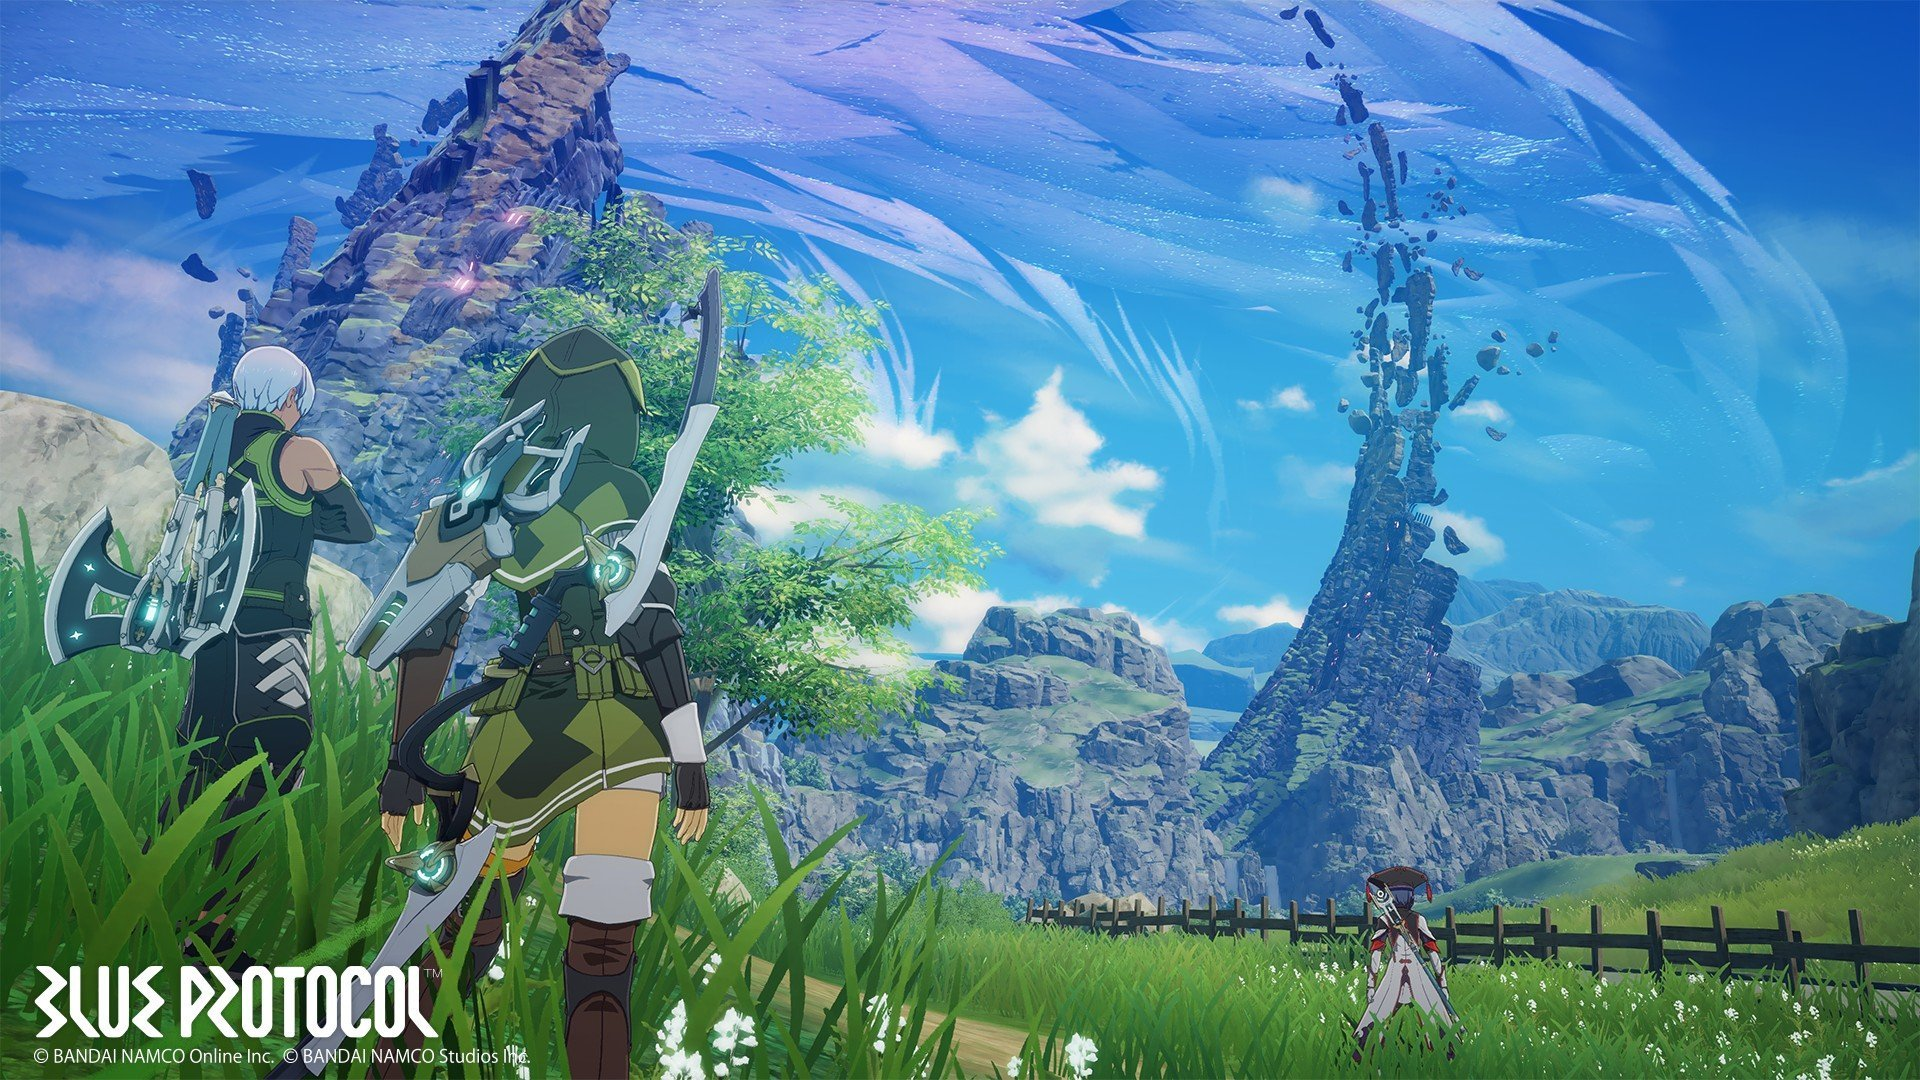 Blue Protocol is the New Action RPG from Bandai Namco for PC